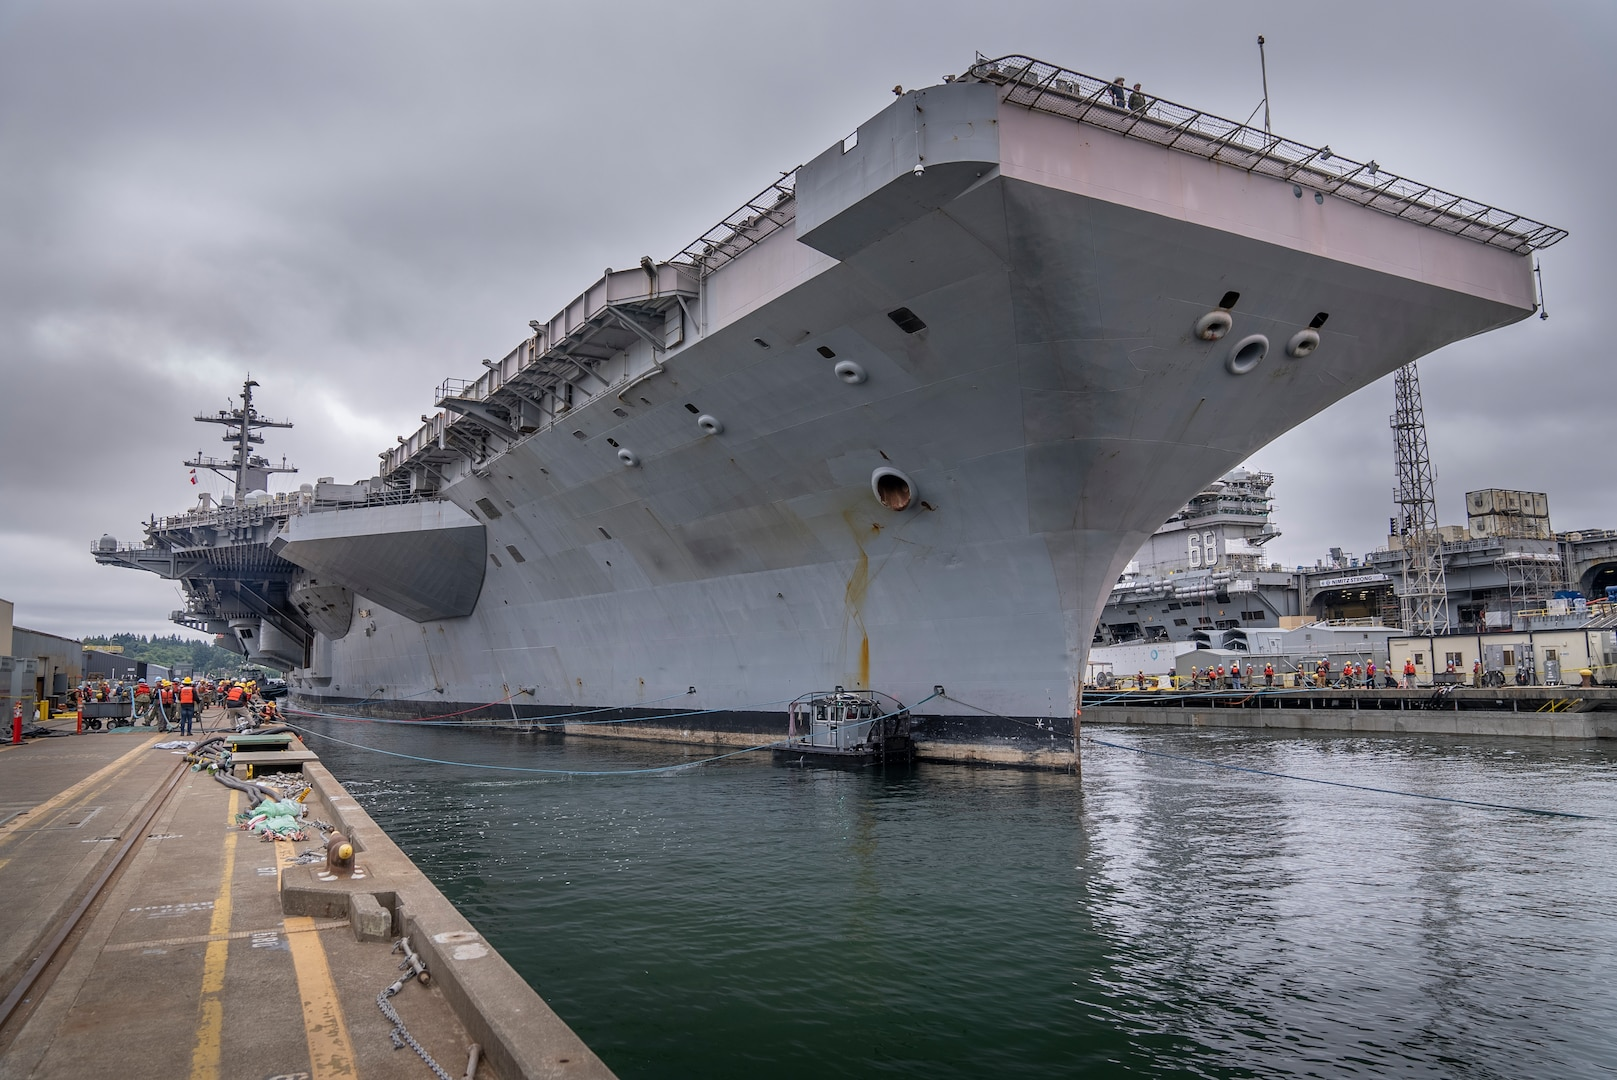 USS Theodore Roosevelt (CVN 71) entered Dry dock 6 at Puget Sound Naval Shipyard & Intermediate Maintenance Facility in Bremerton, Wash., Sept. 10, 2021, to begin the docking portion of a 16.4-month Docking Planned Incremental Availability. (PSNS & IMF photo by Brian Kilpatrick)